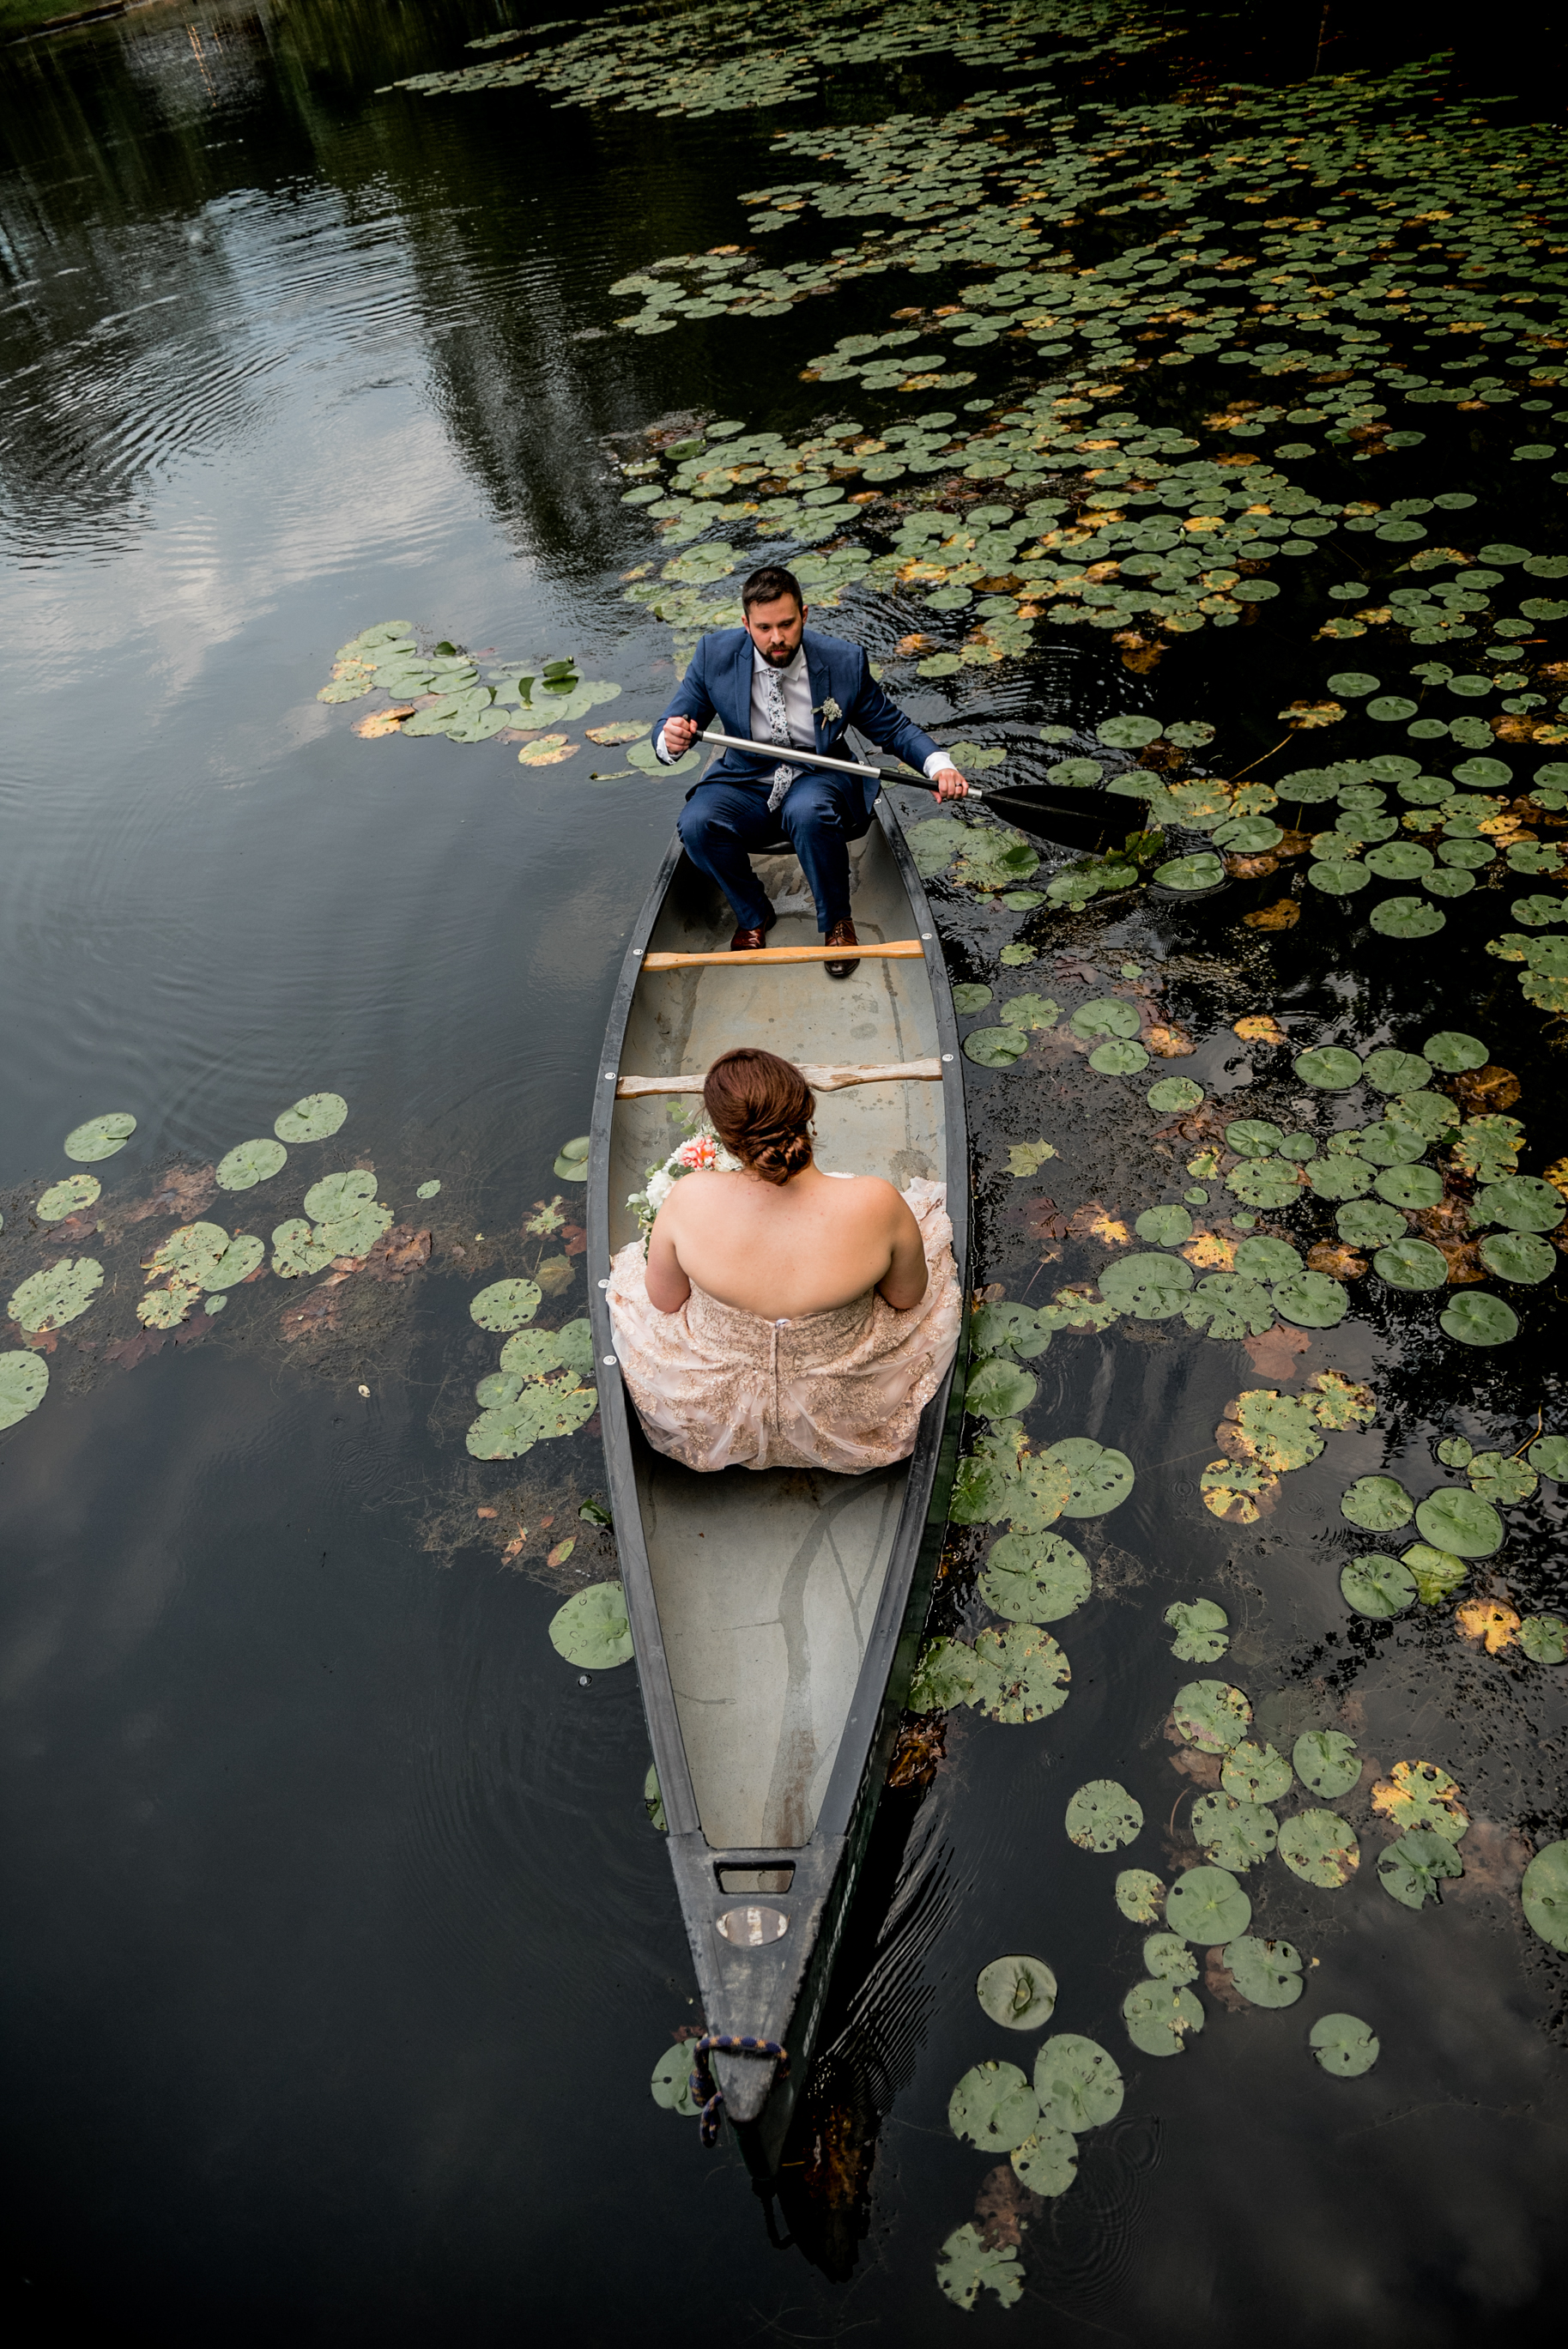 bride and groom romantically canoe on pond surrounded by water lilies